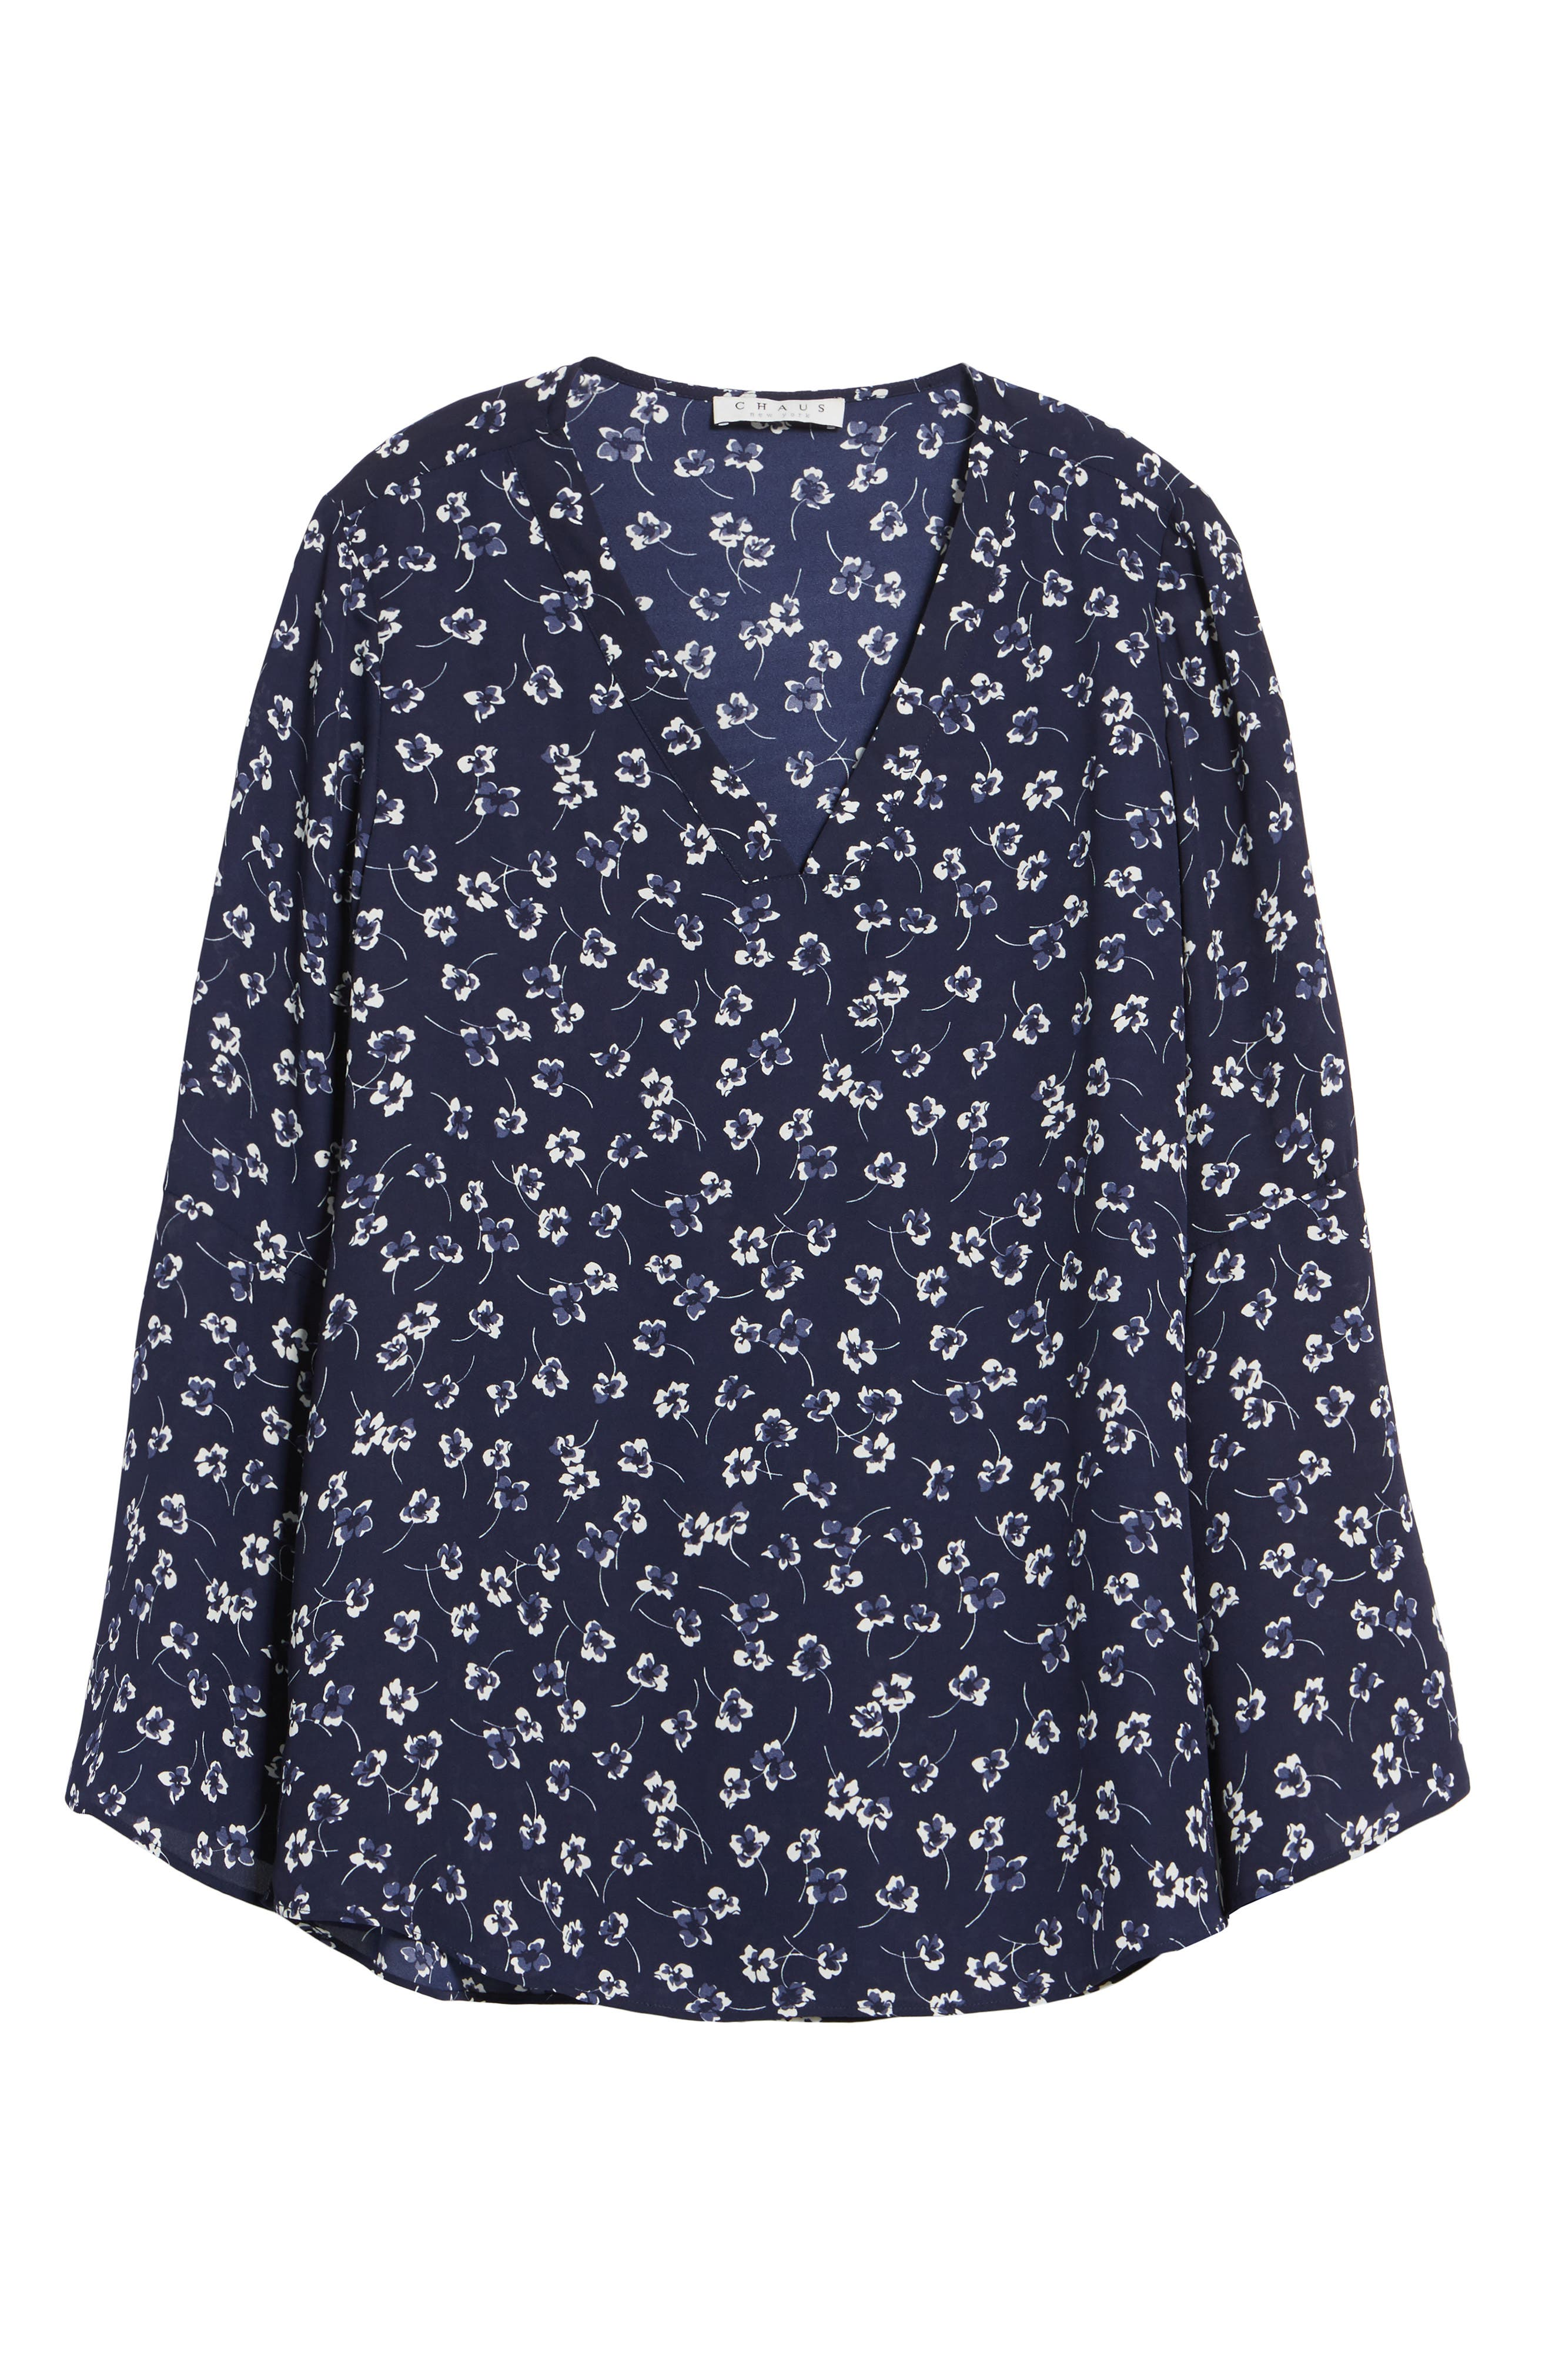 Ditsy Floral Print Bell Sleeve Blouse,                             Alternate thumbnail 6, color,                             429